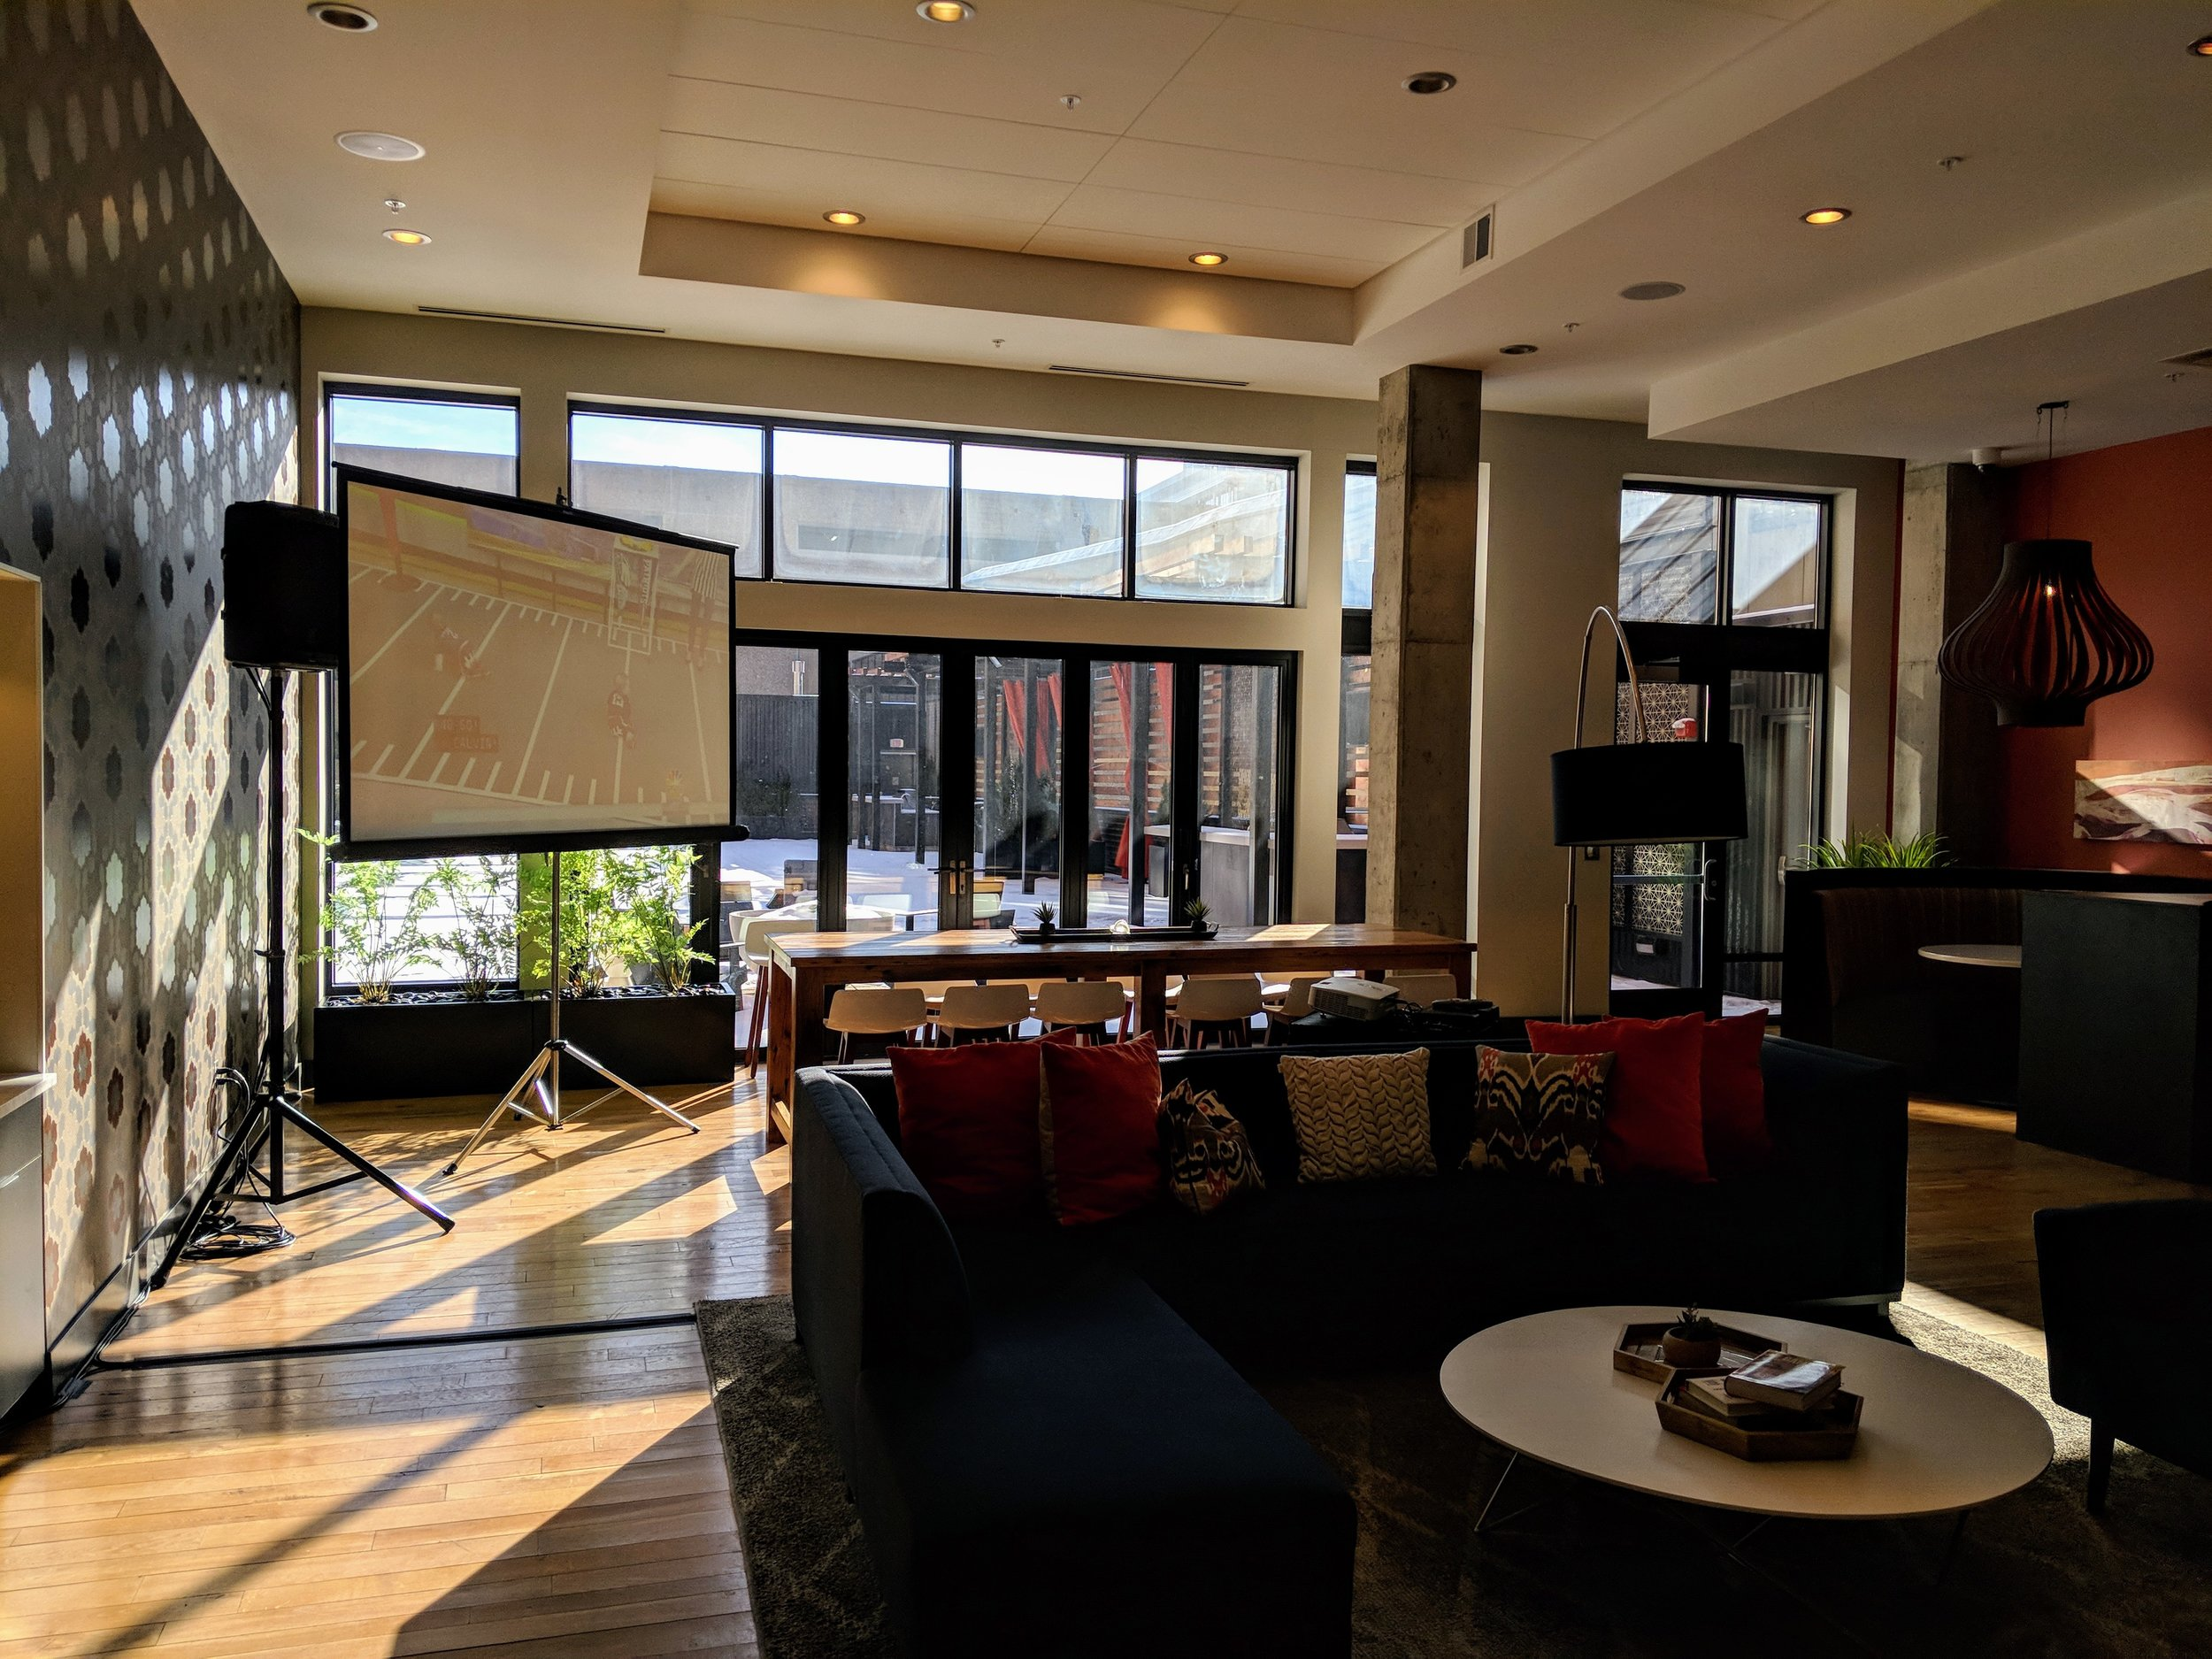 Picture of AV for You set up at Latitude 45 Apartments in Mpls.